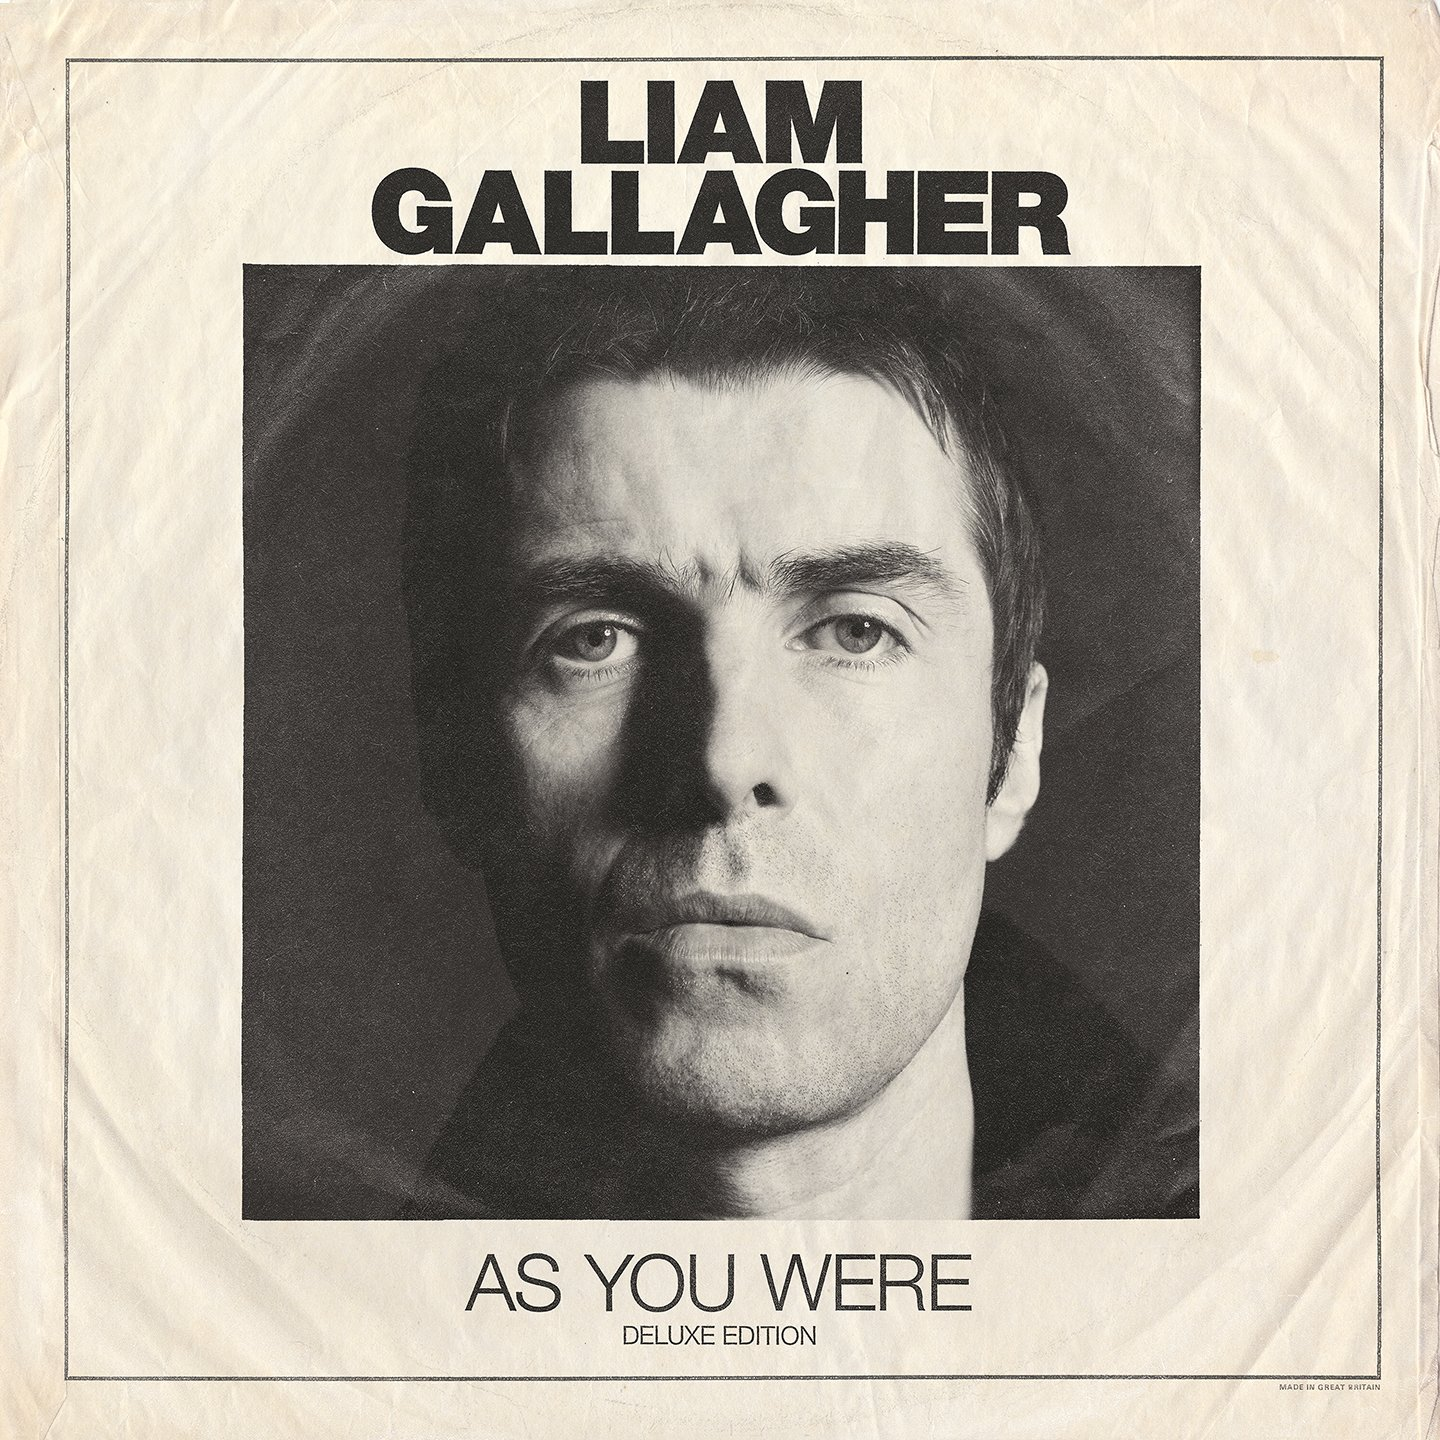 Risultati immagini per liam gallagher as you were